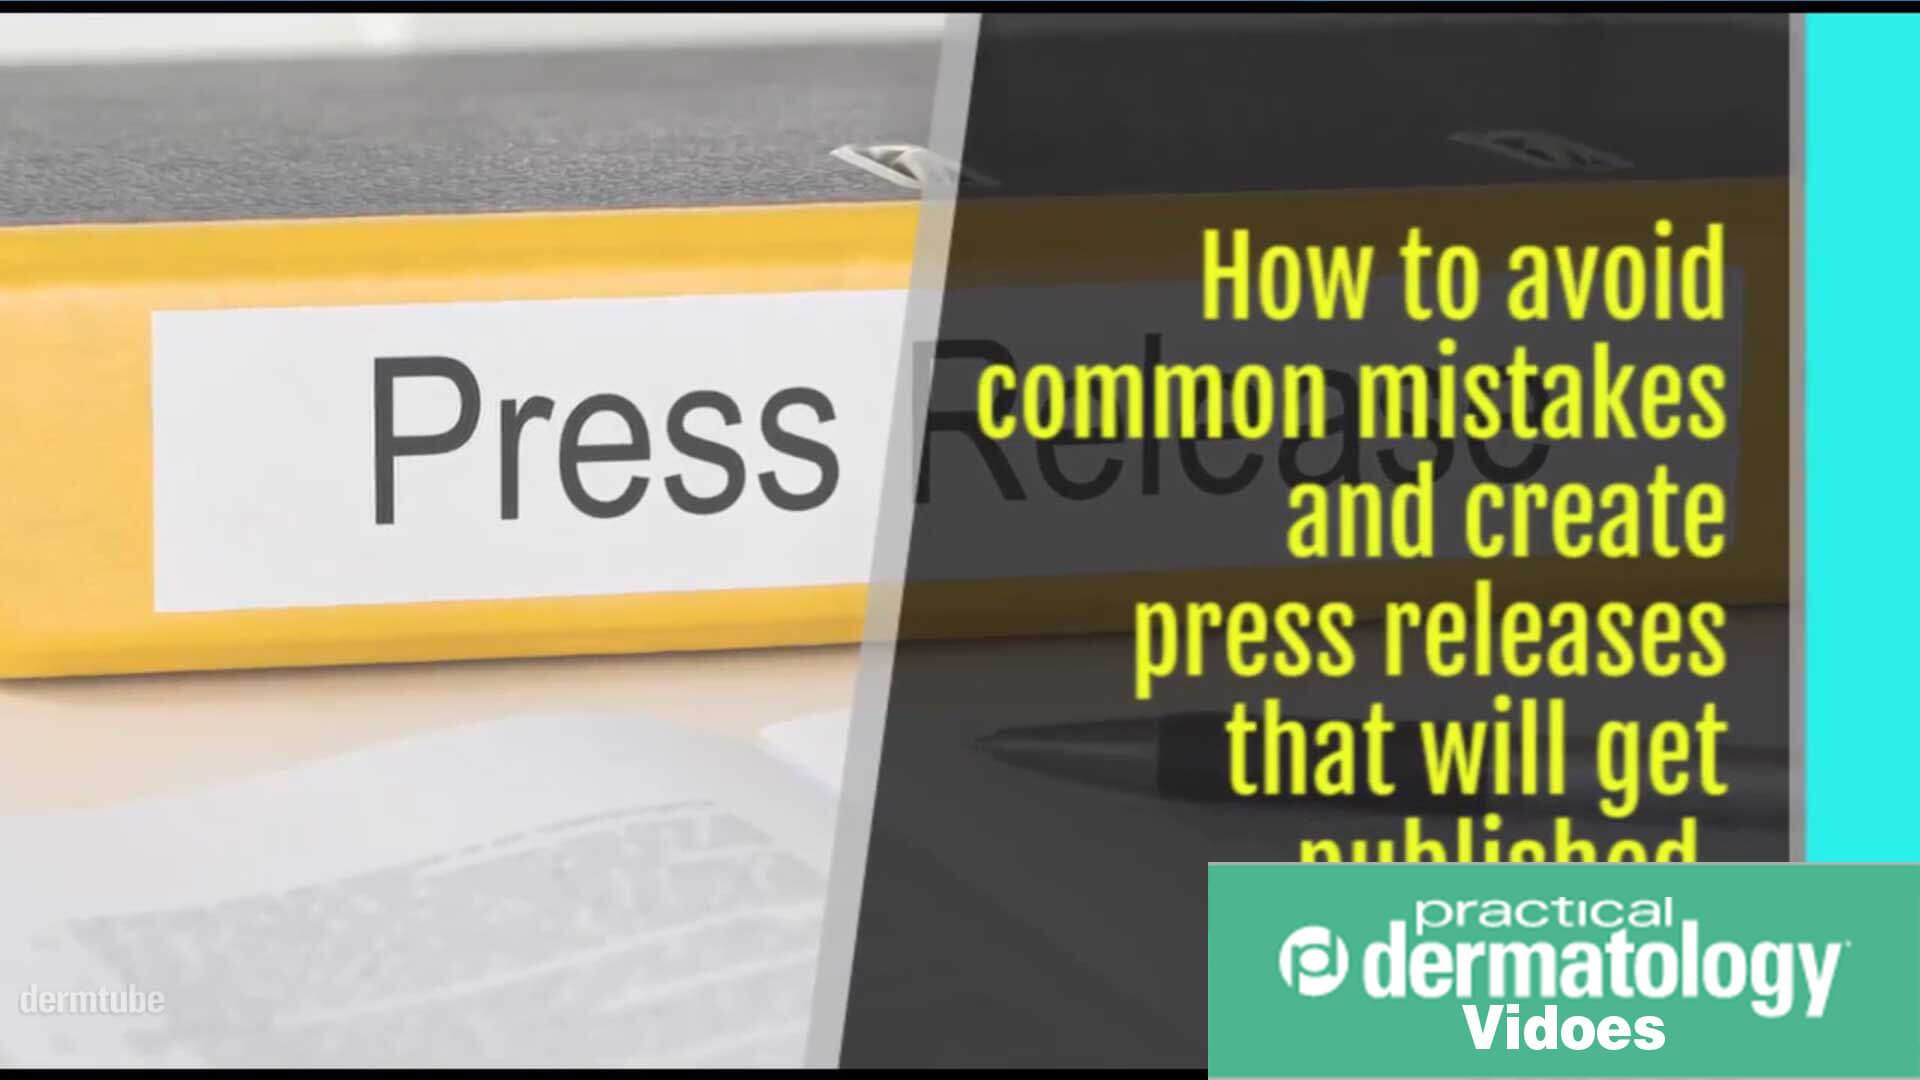 How to avoid common mistakes and create press releases that will get published